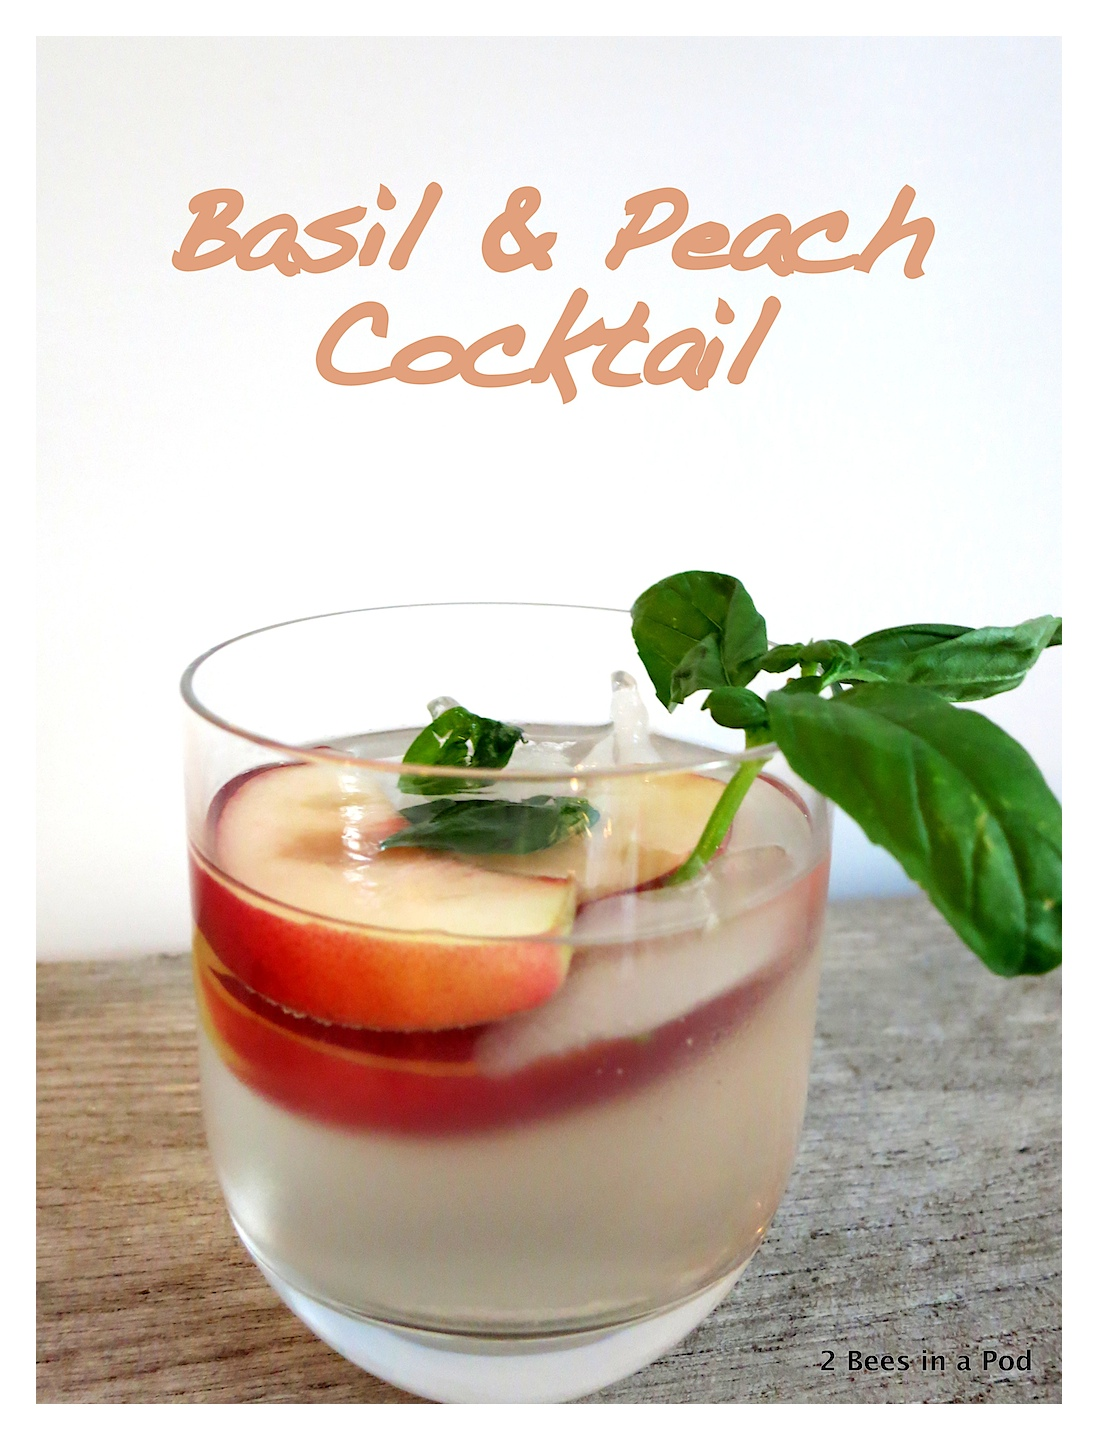 Basil and Peach cocktail